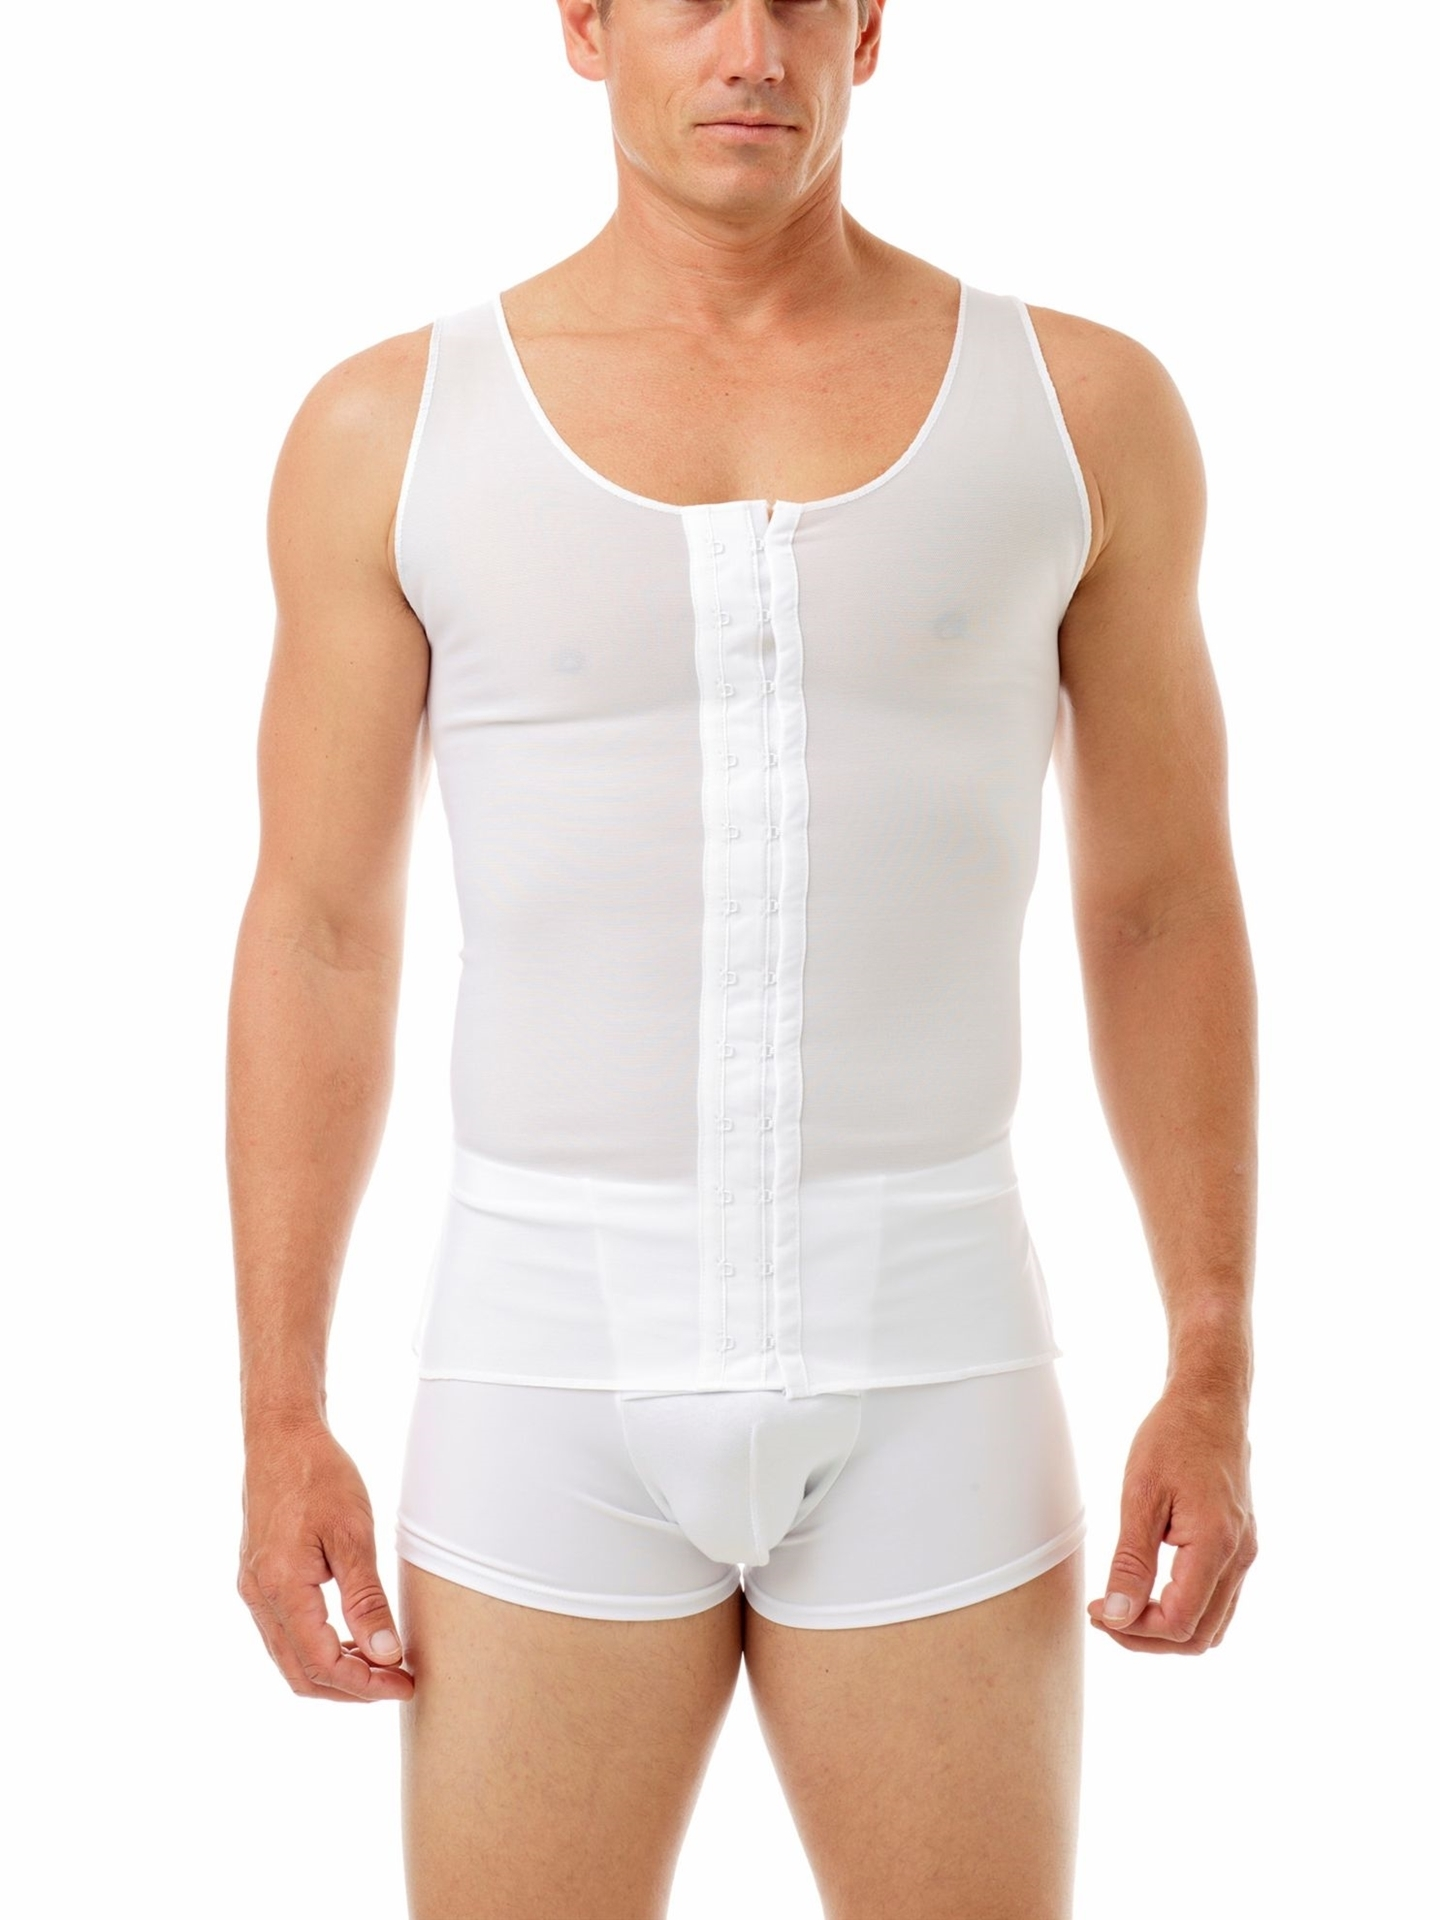 Compression Post Surgical Vests To Heal Fast